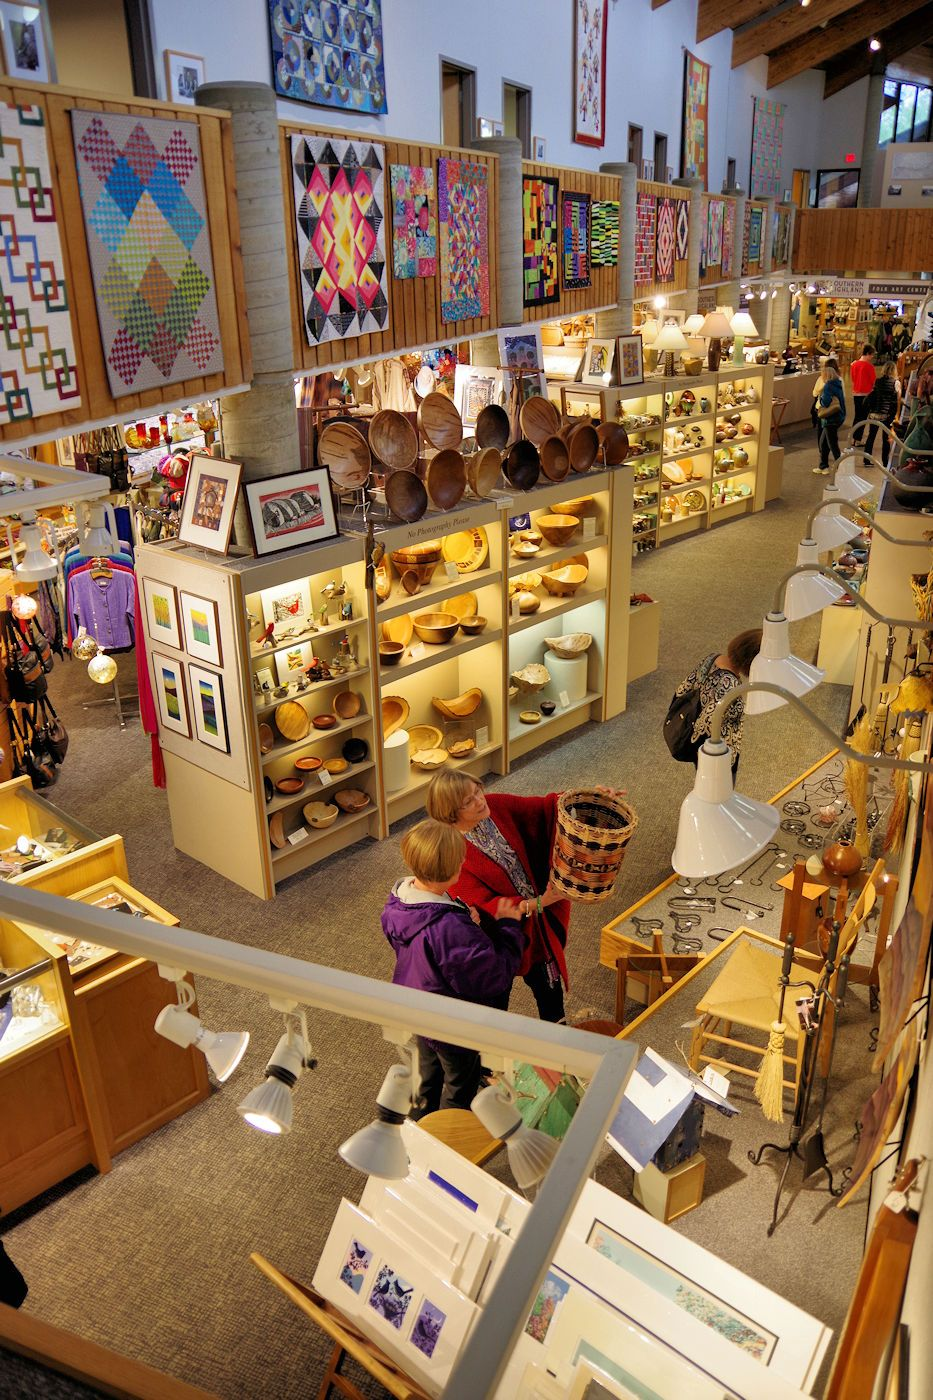 Folk art center with art and craft from 200 artists on